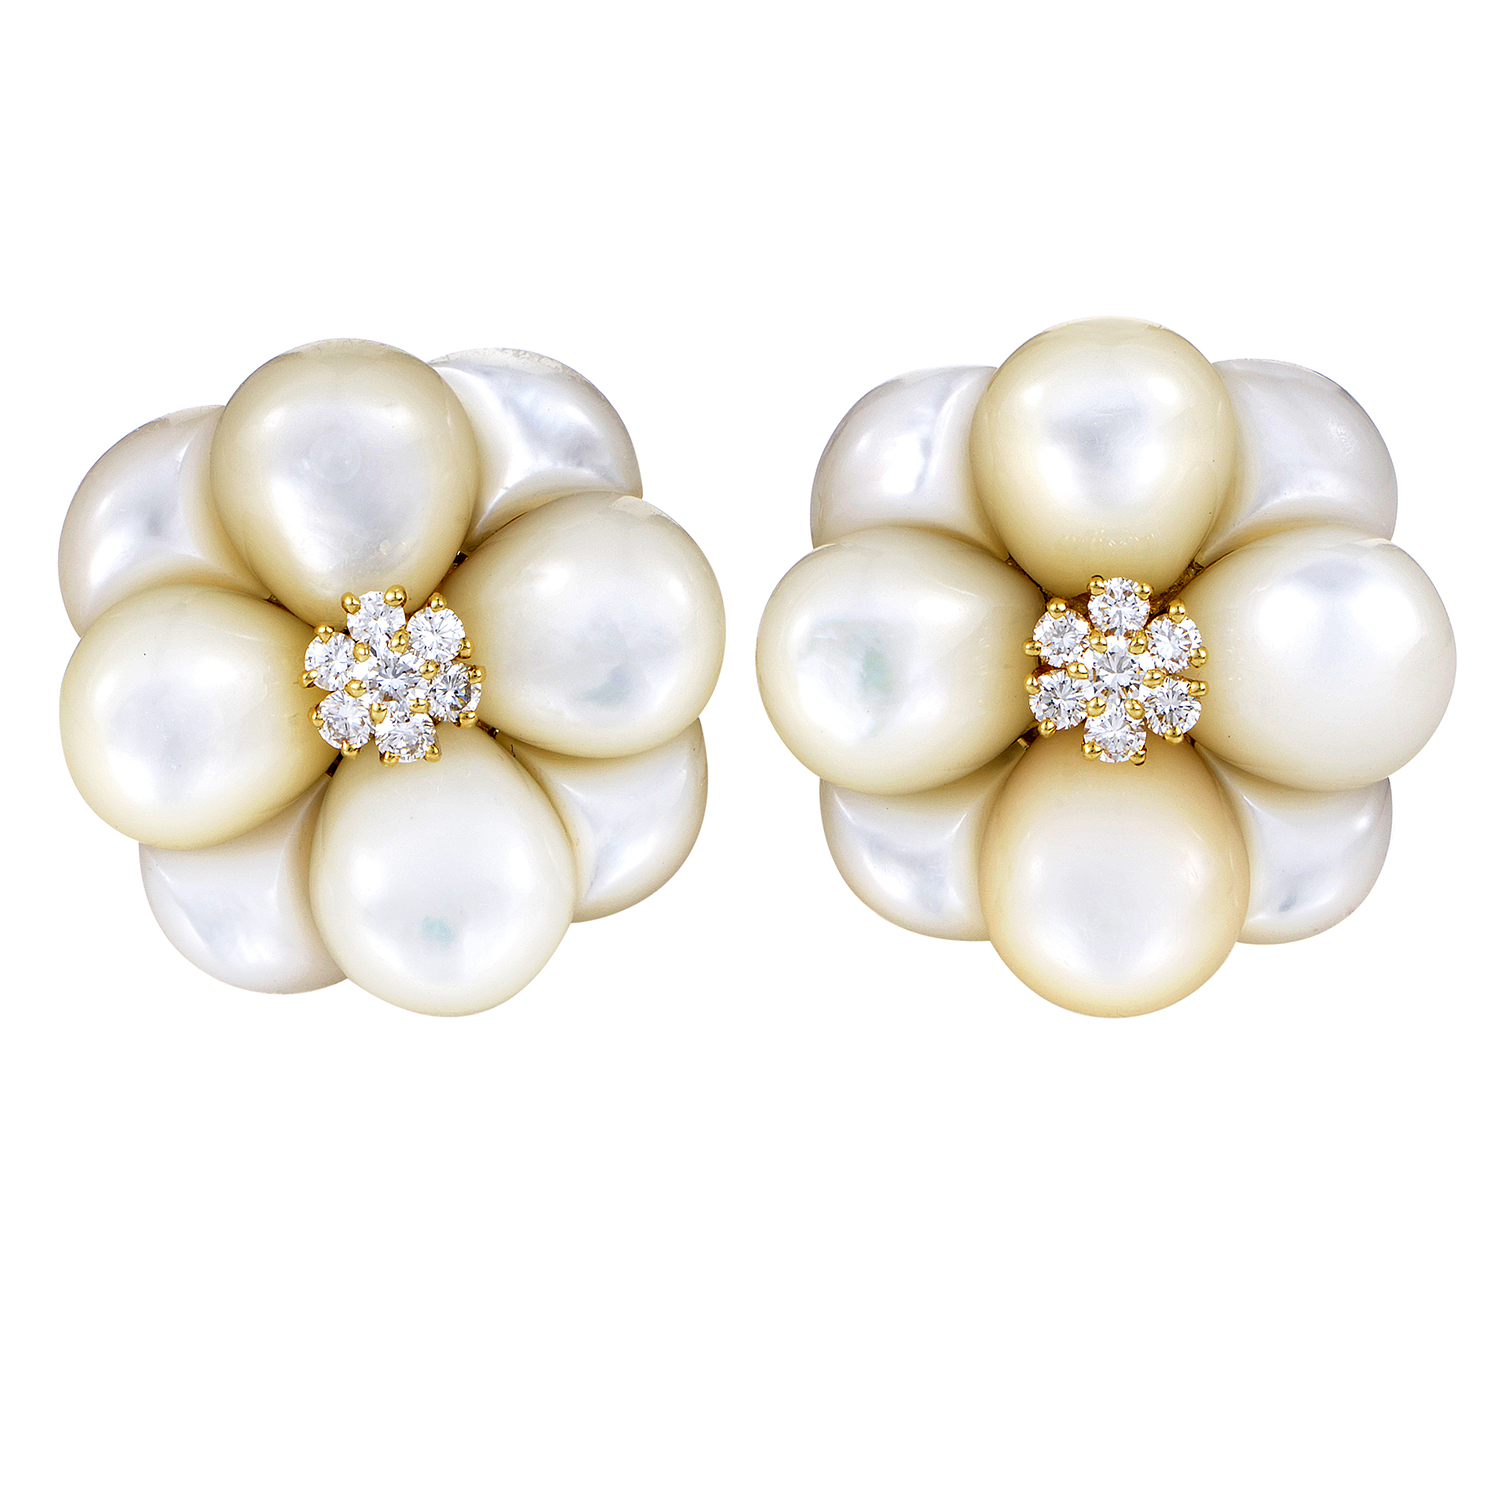 Van Cleef & Arpels 18K Yellow Gold Diamond & Mother of Pearl Flower Earrings